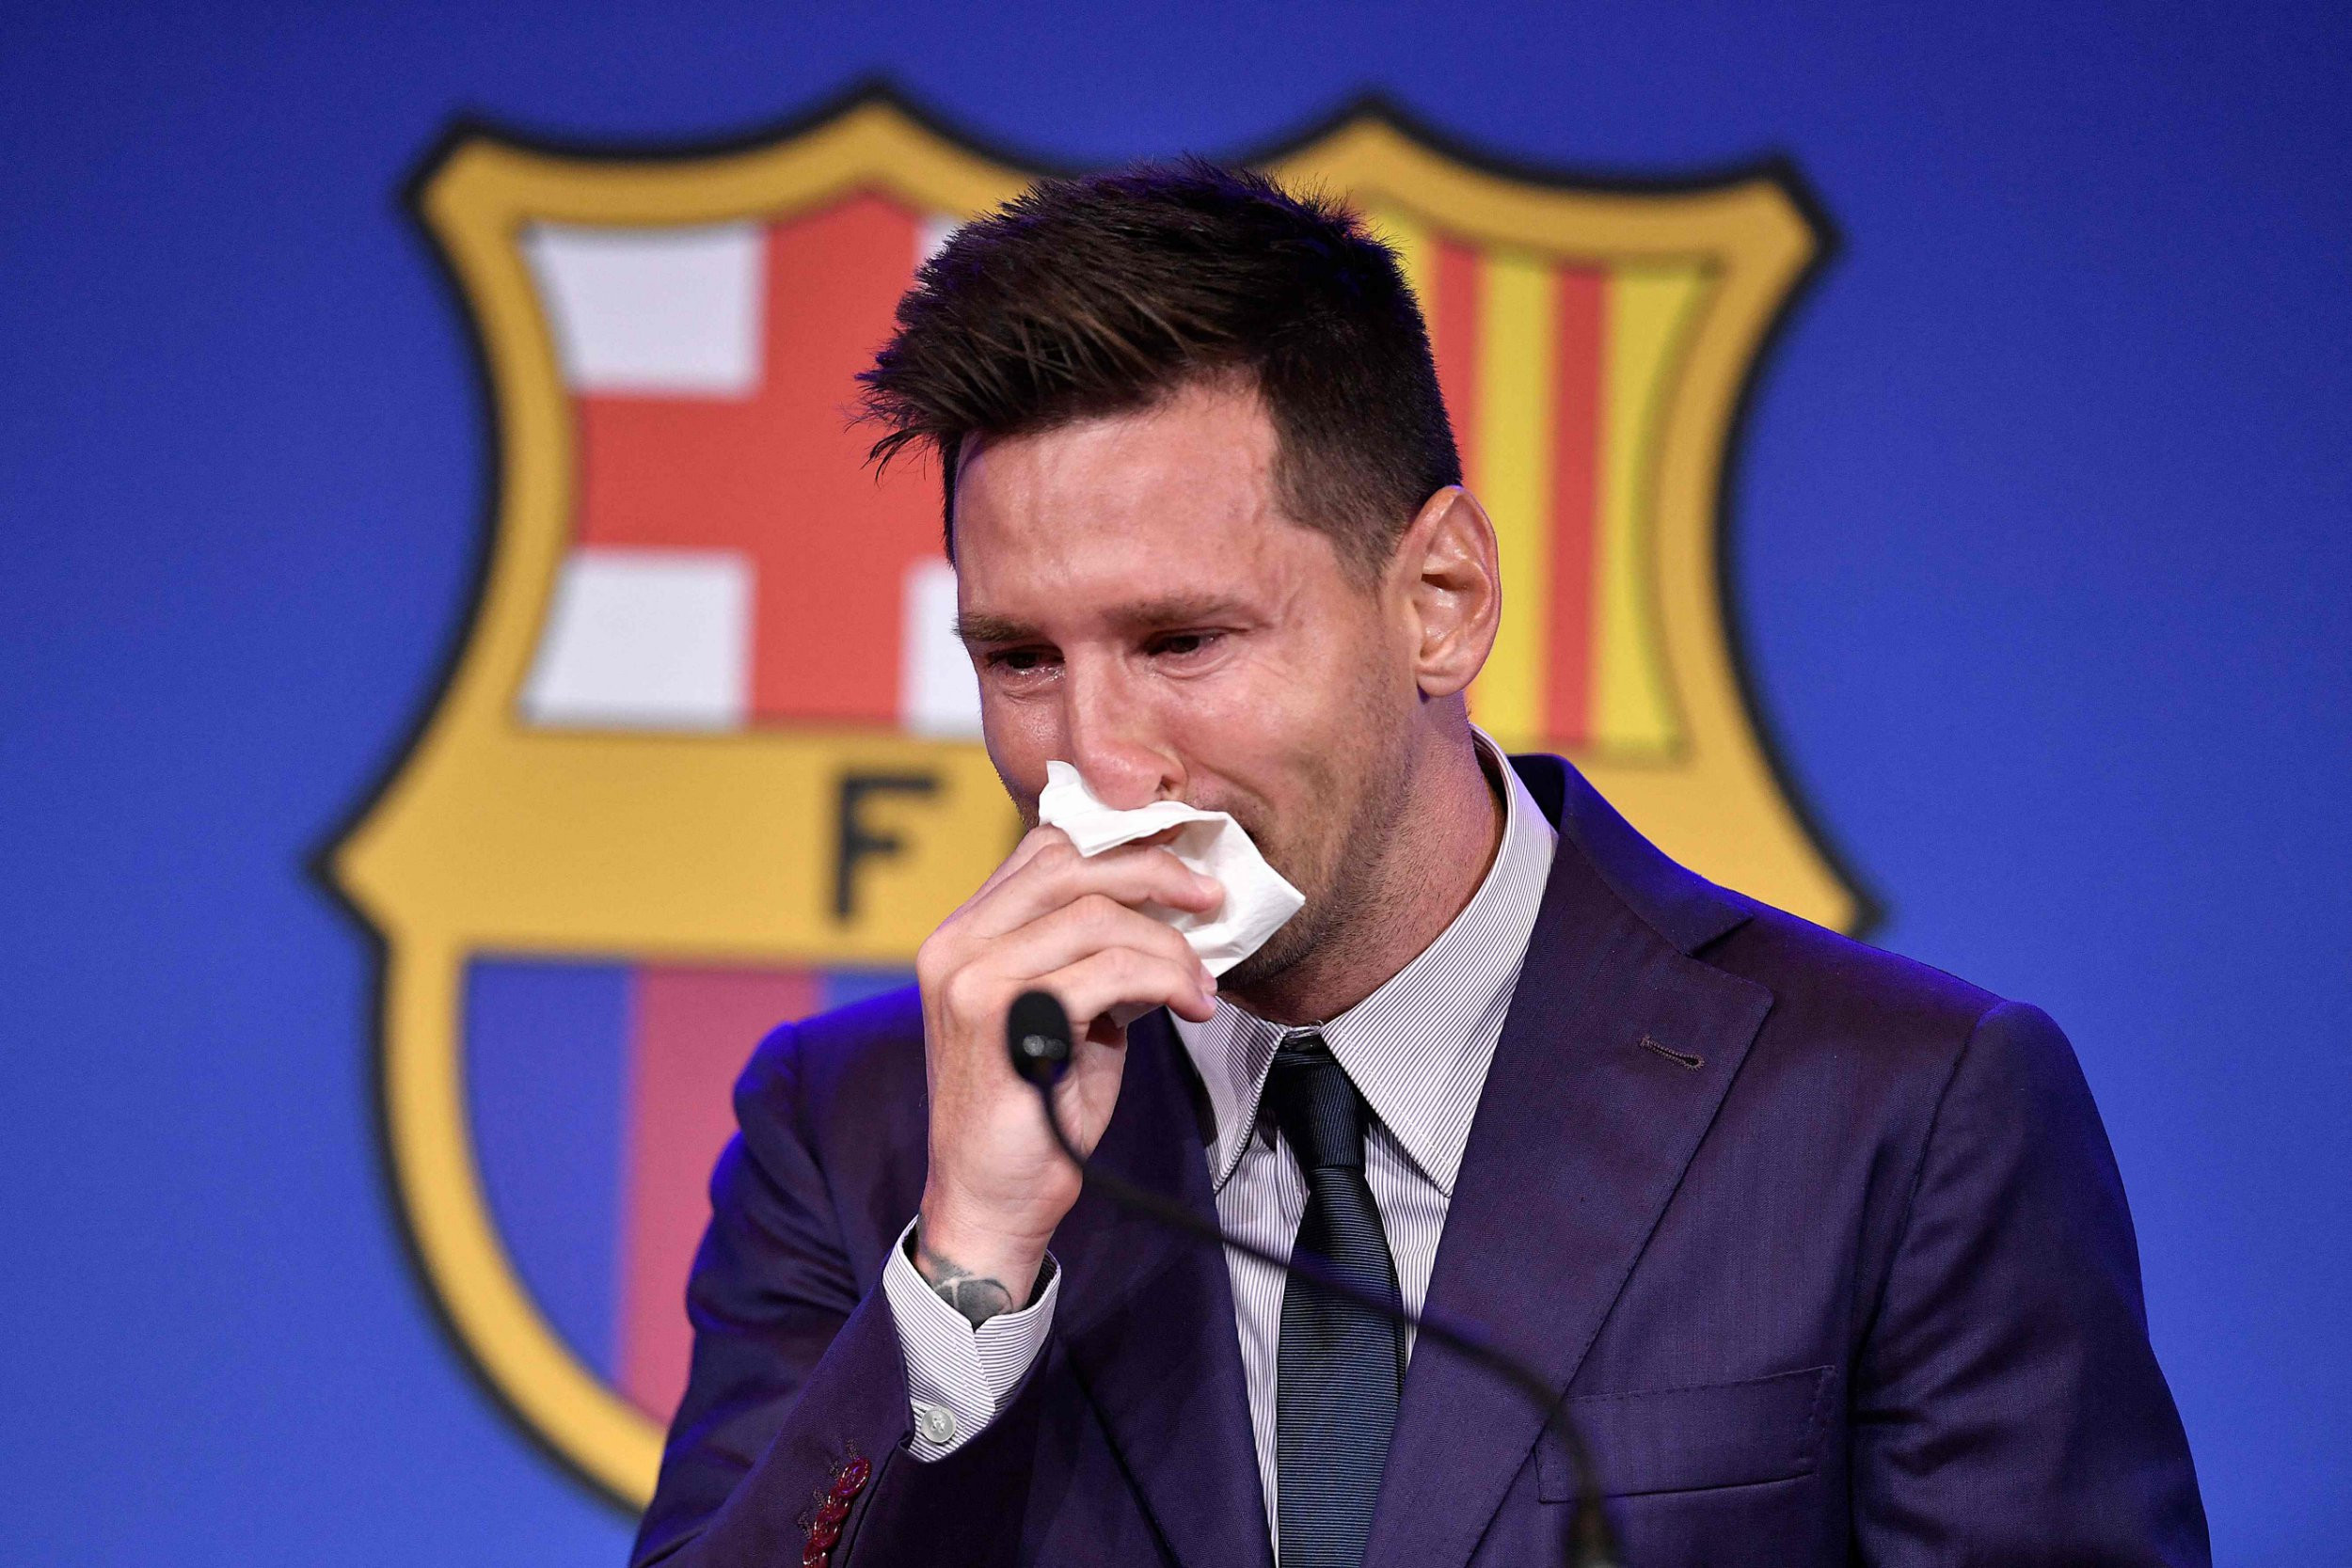 Lionel Messi breaks down in tears as he's given standing ovation at Barcelona farewell press conference